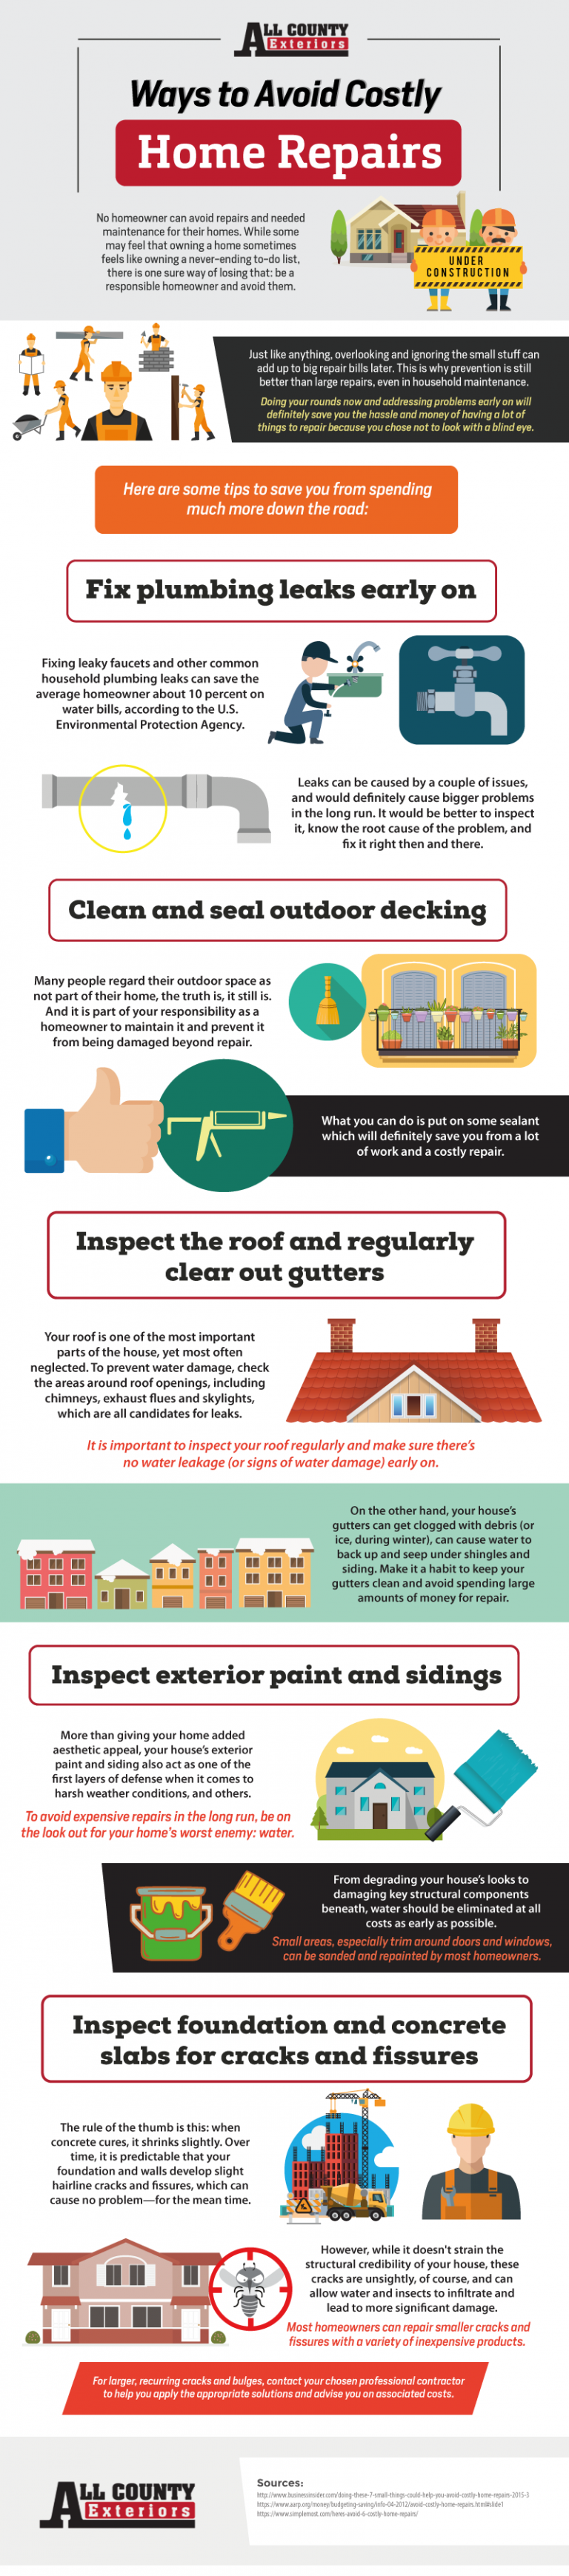 Ways-to-Avoid-Costly-Home-Repairs